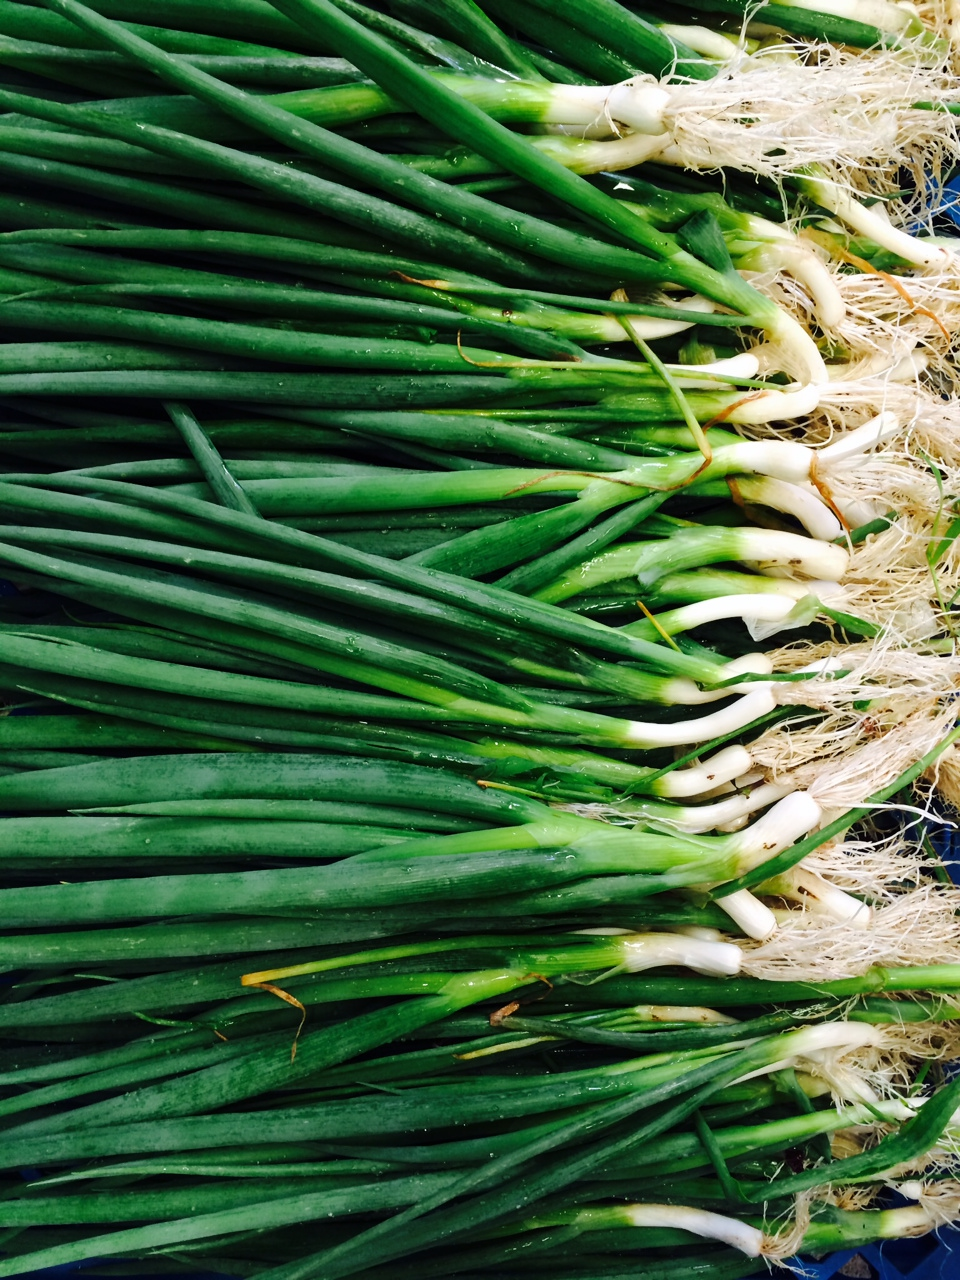 Vibrant Spring onions